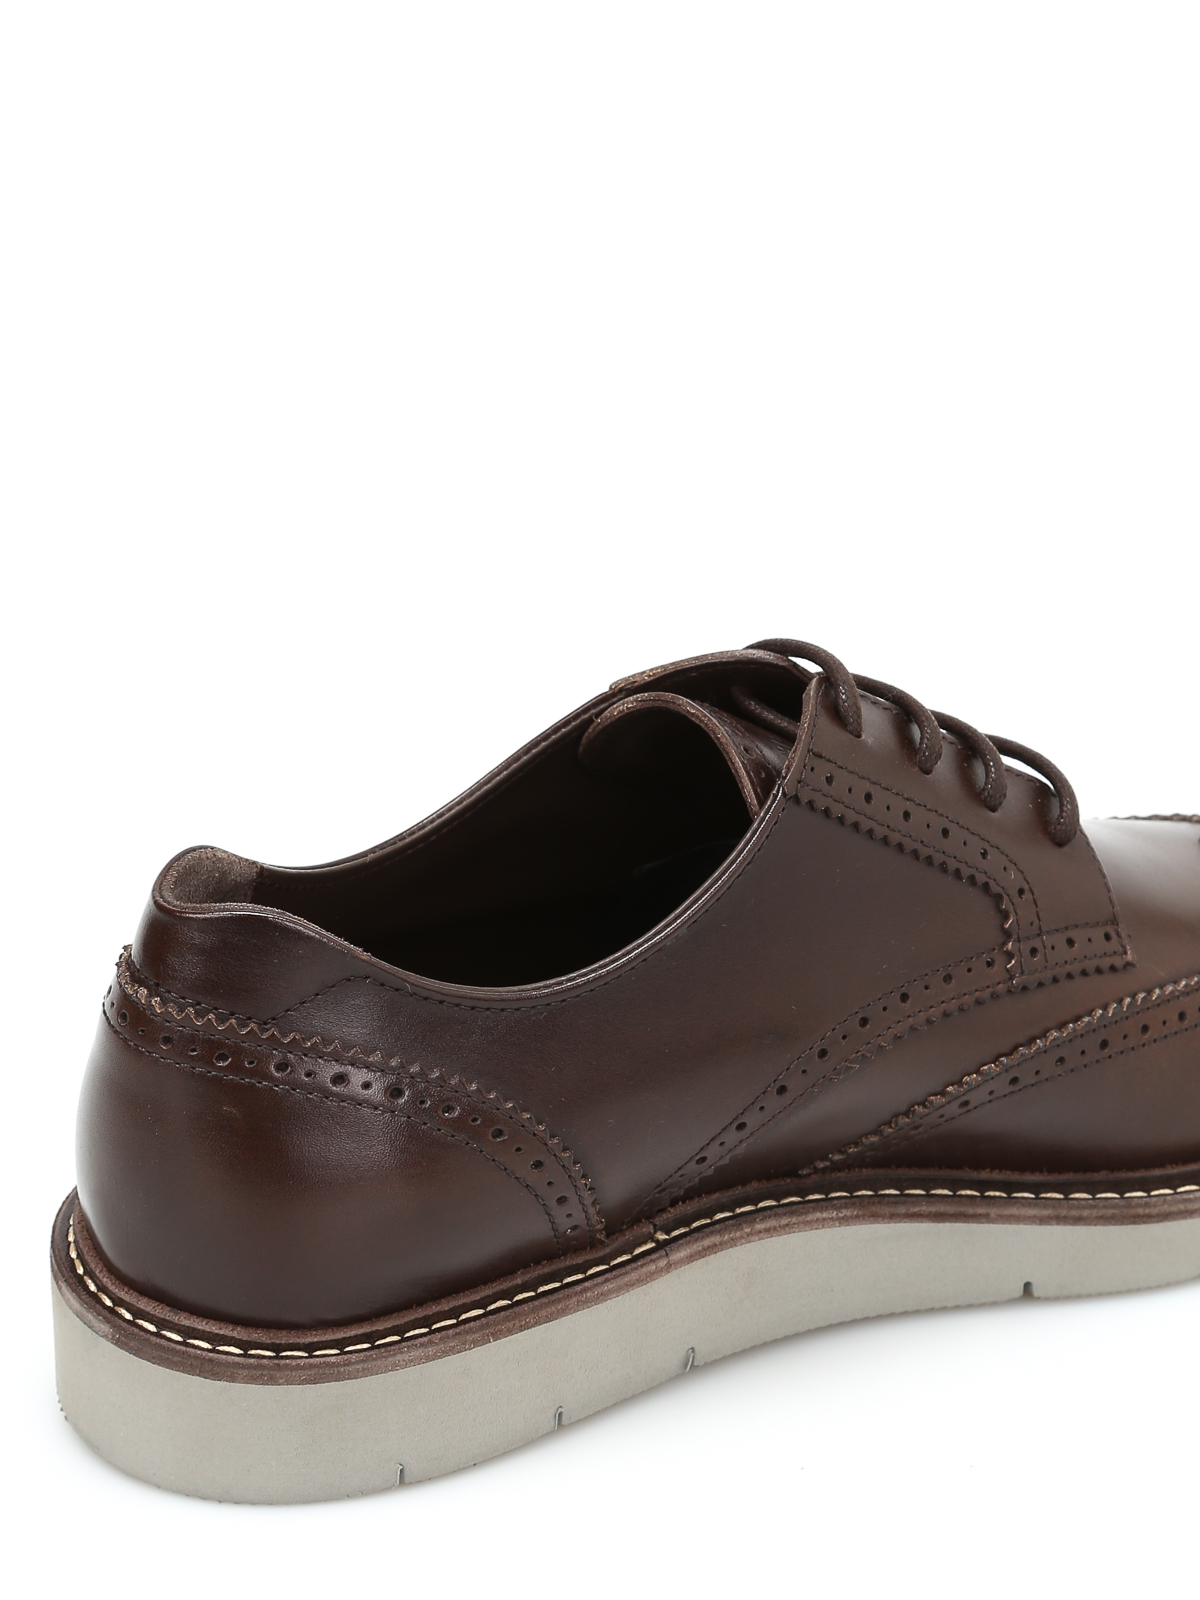 Hogan H322 Derby shoes آکسفورد HXM3220Y2107X7S800 | iKRIX